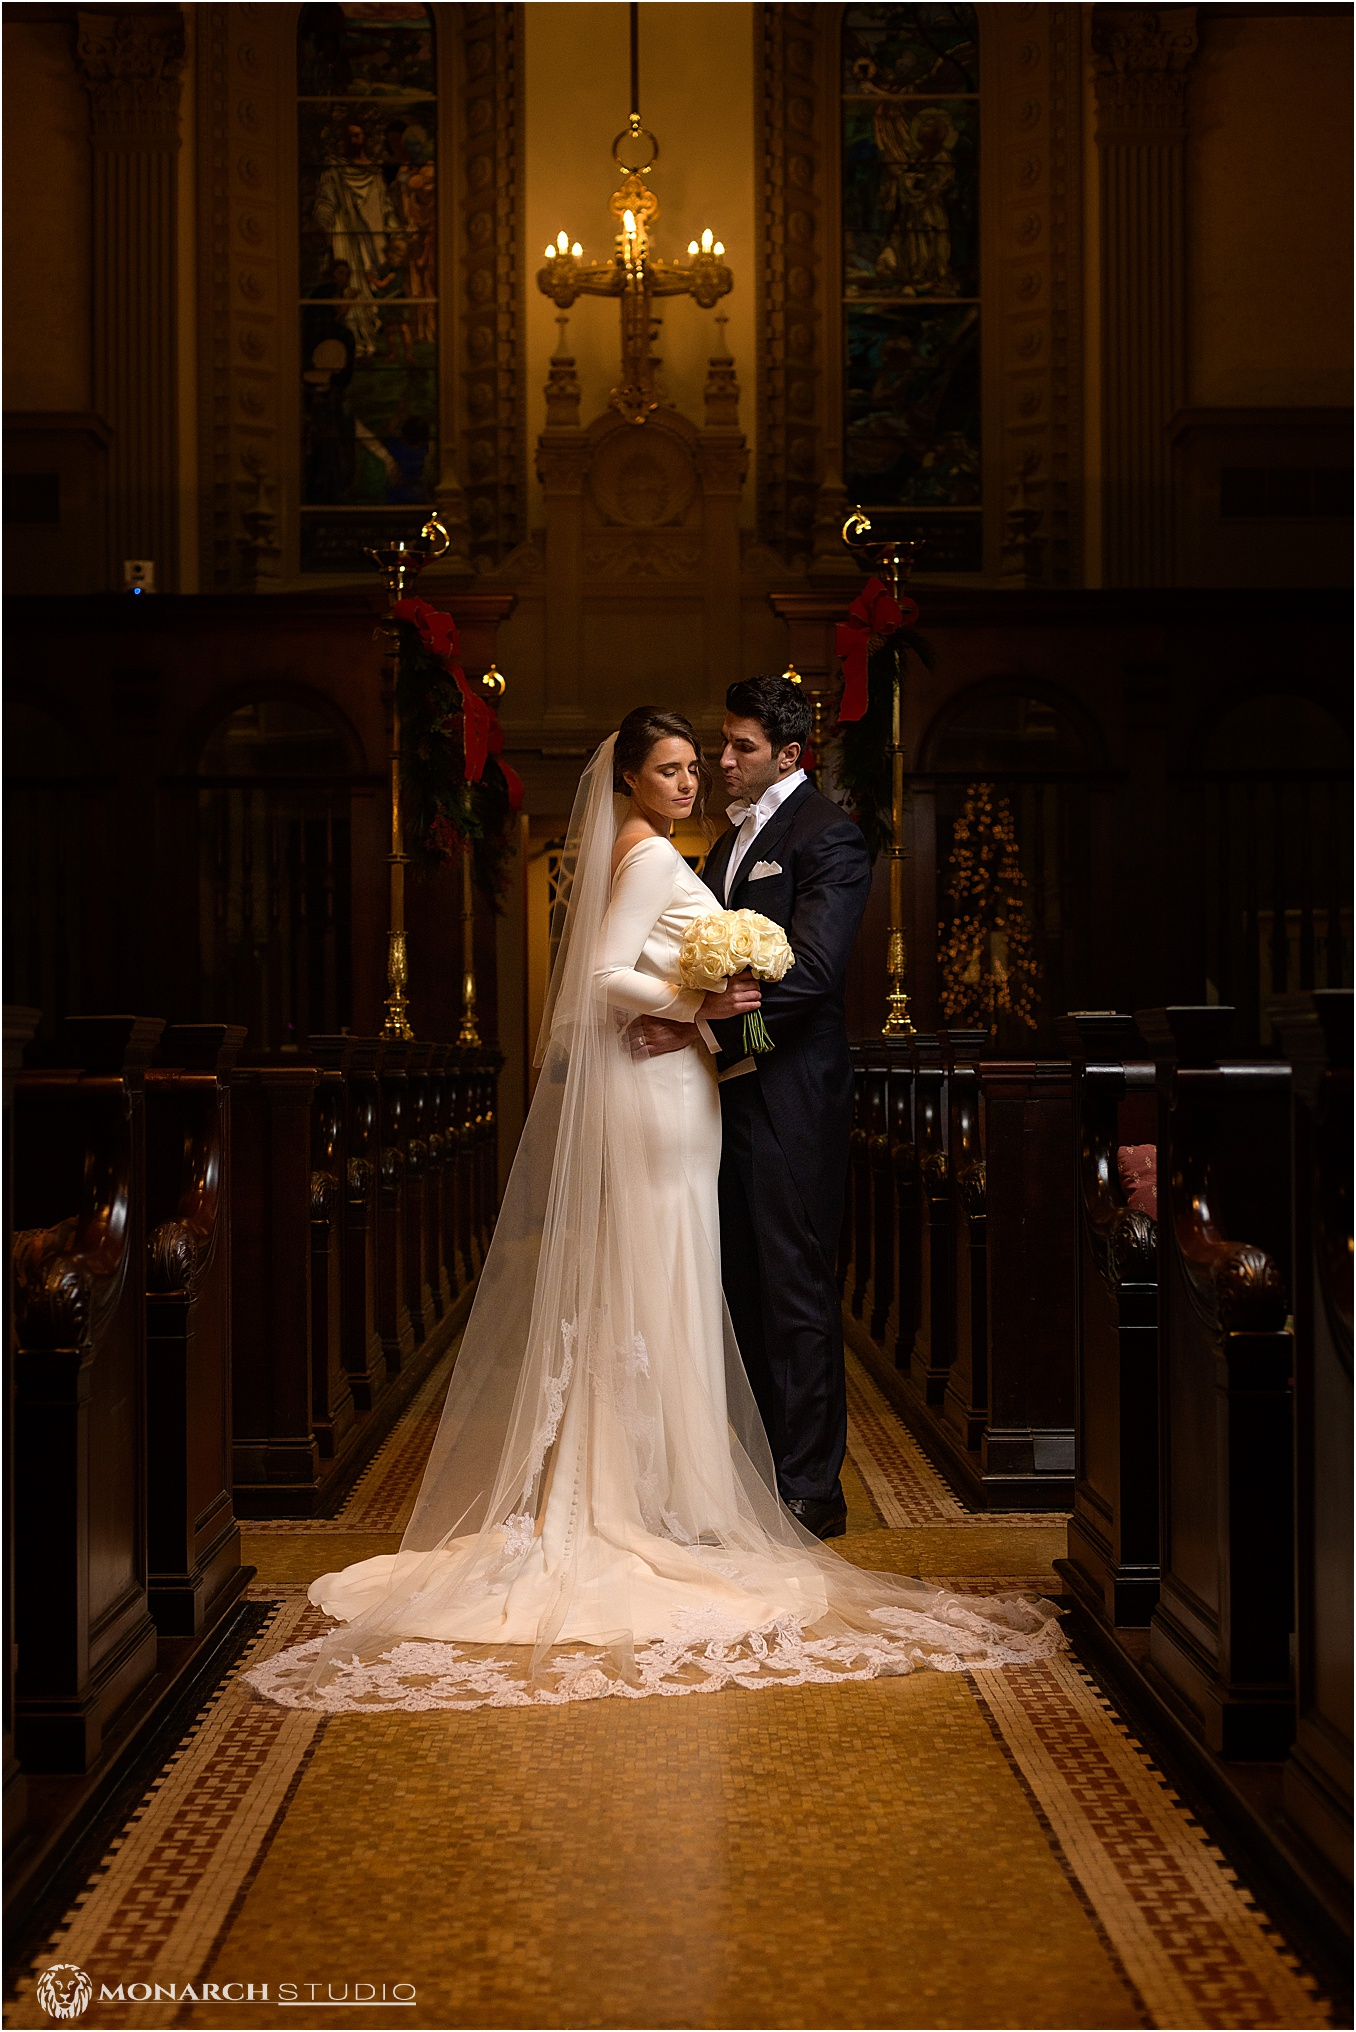 Eva and Peter's beautiful wedding portrait in the Historic Memorial Presbyterian Church.